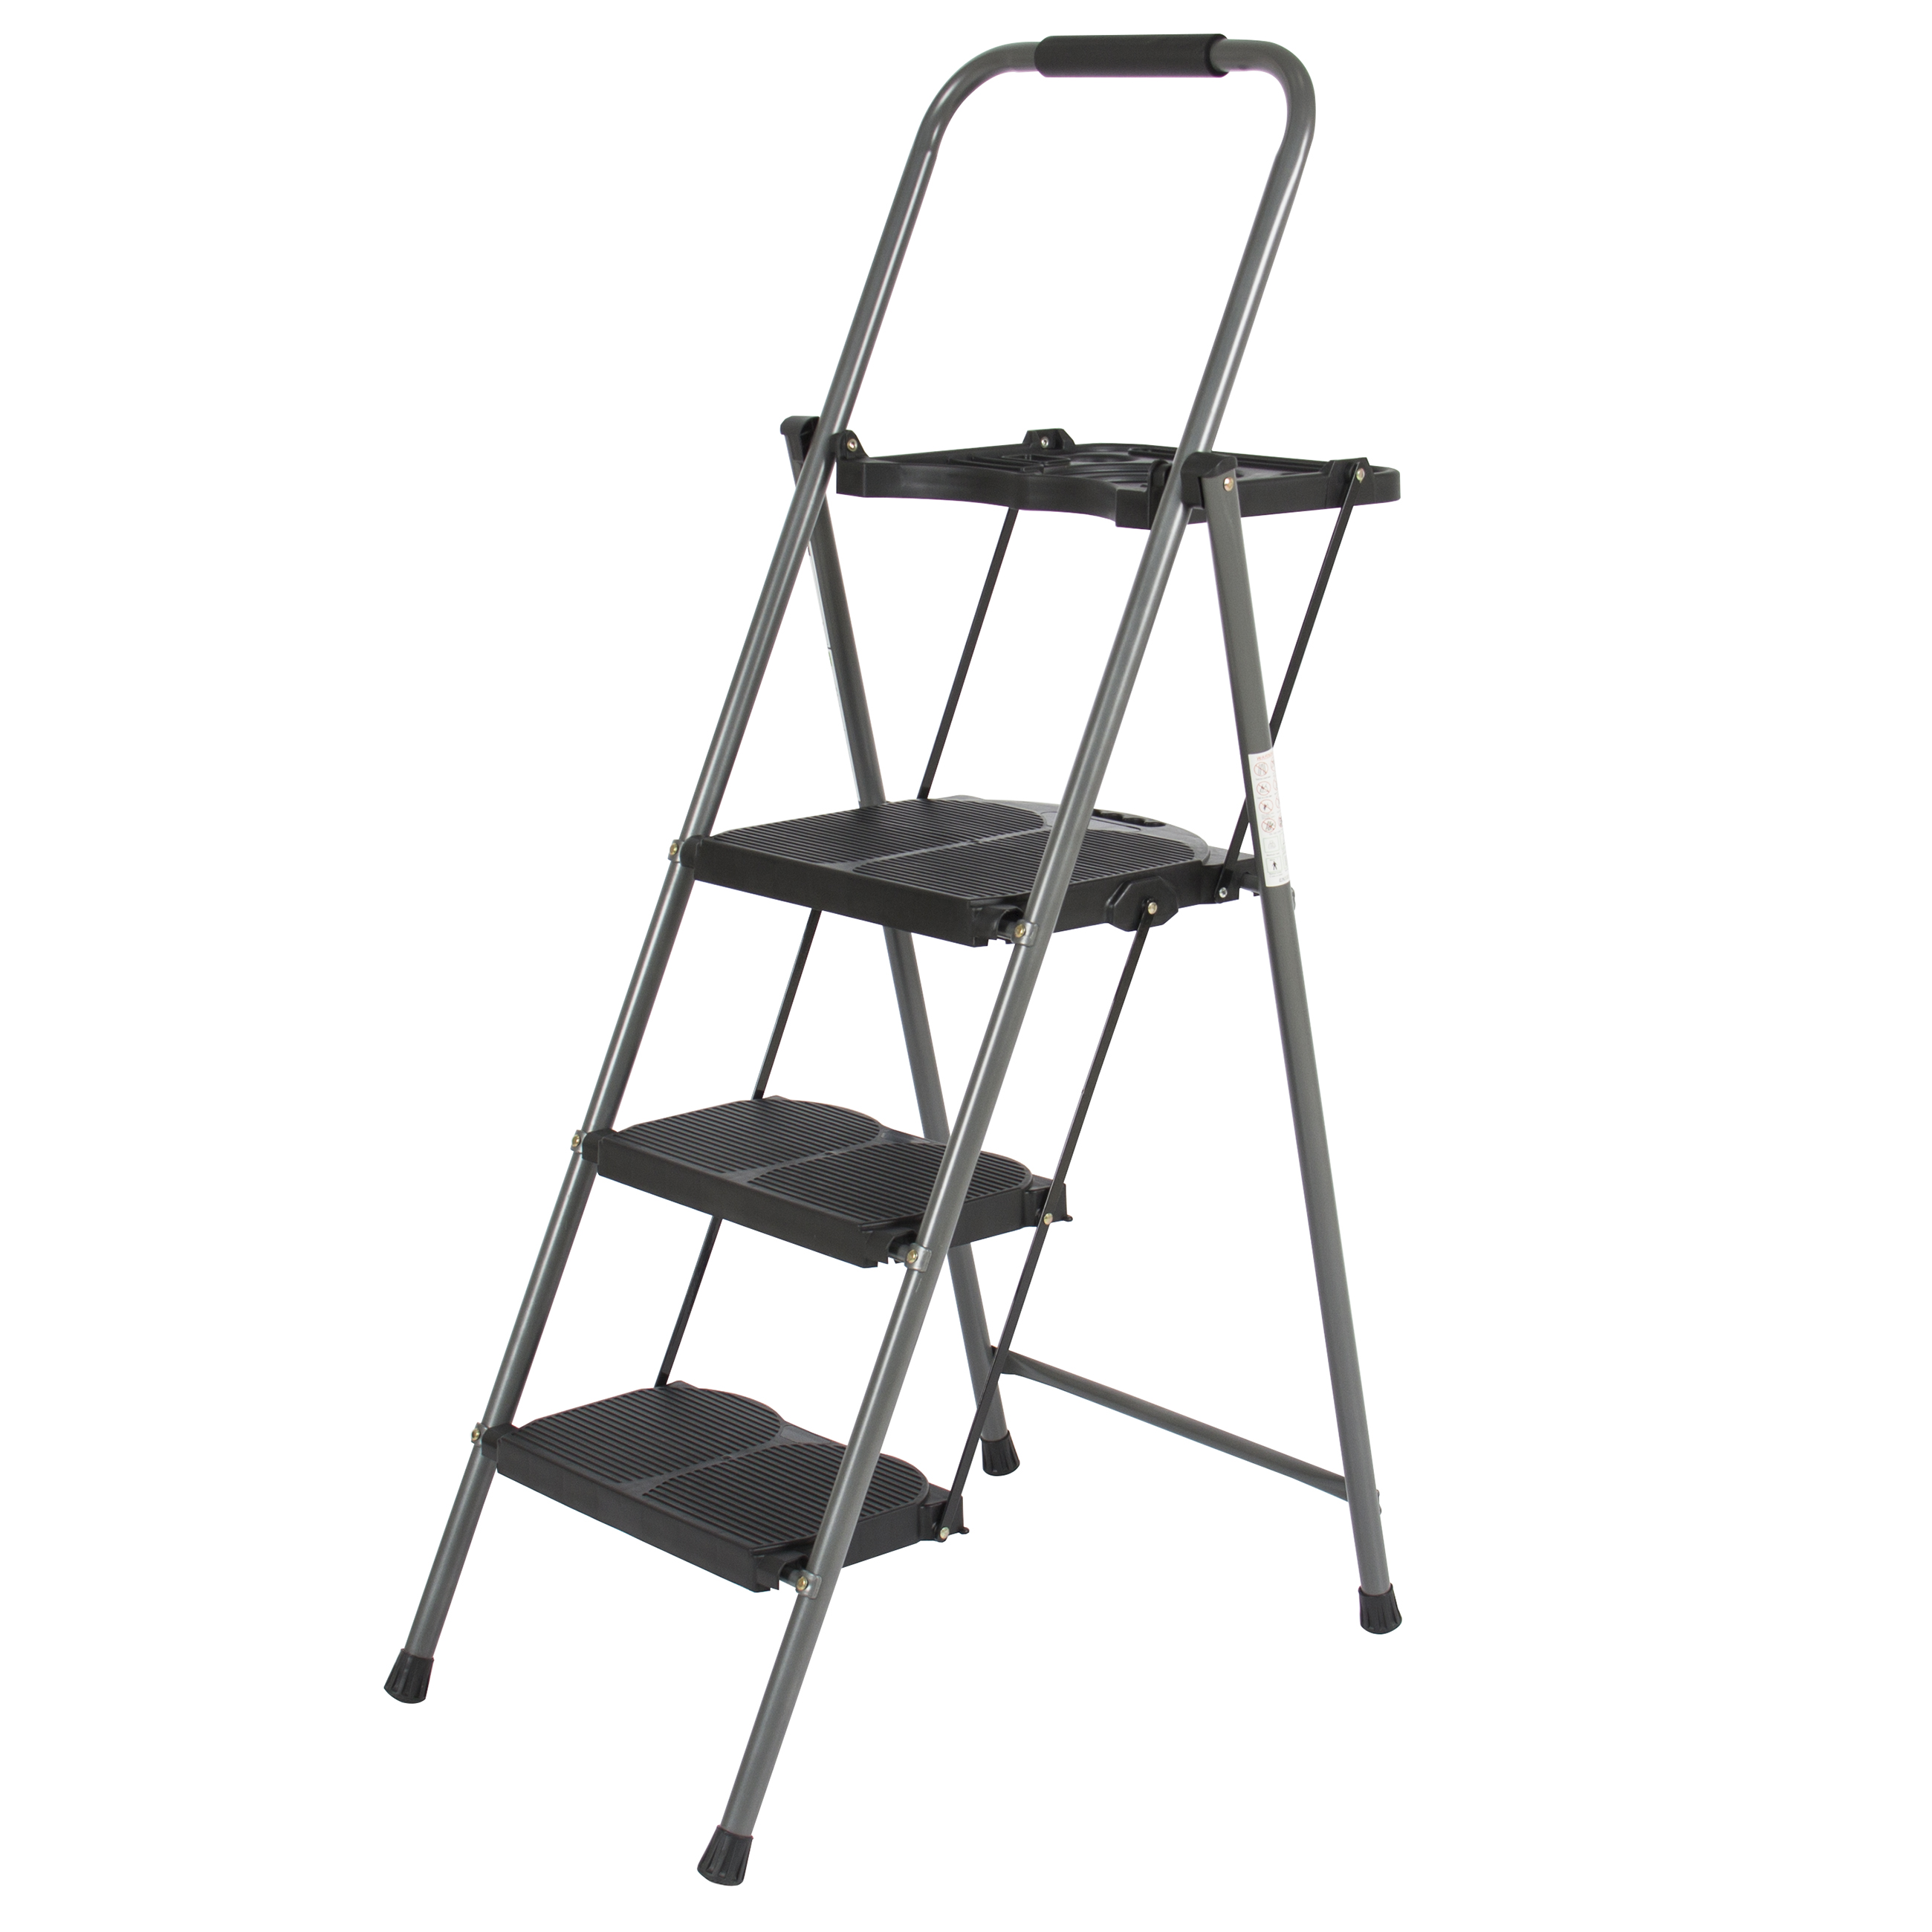 Best Choice Products 3 Step Ladder Platform Lightweight Folding Stool 330 LBS Cap Space Saving w/Tray